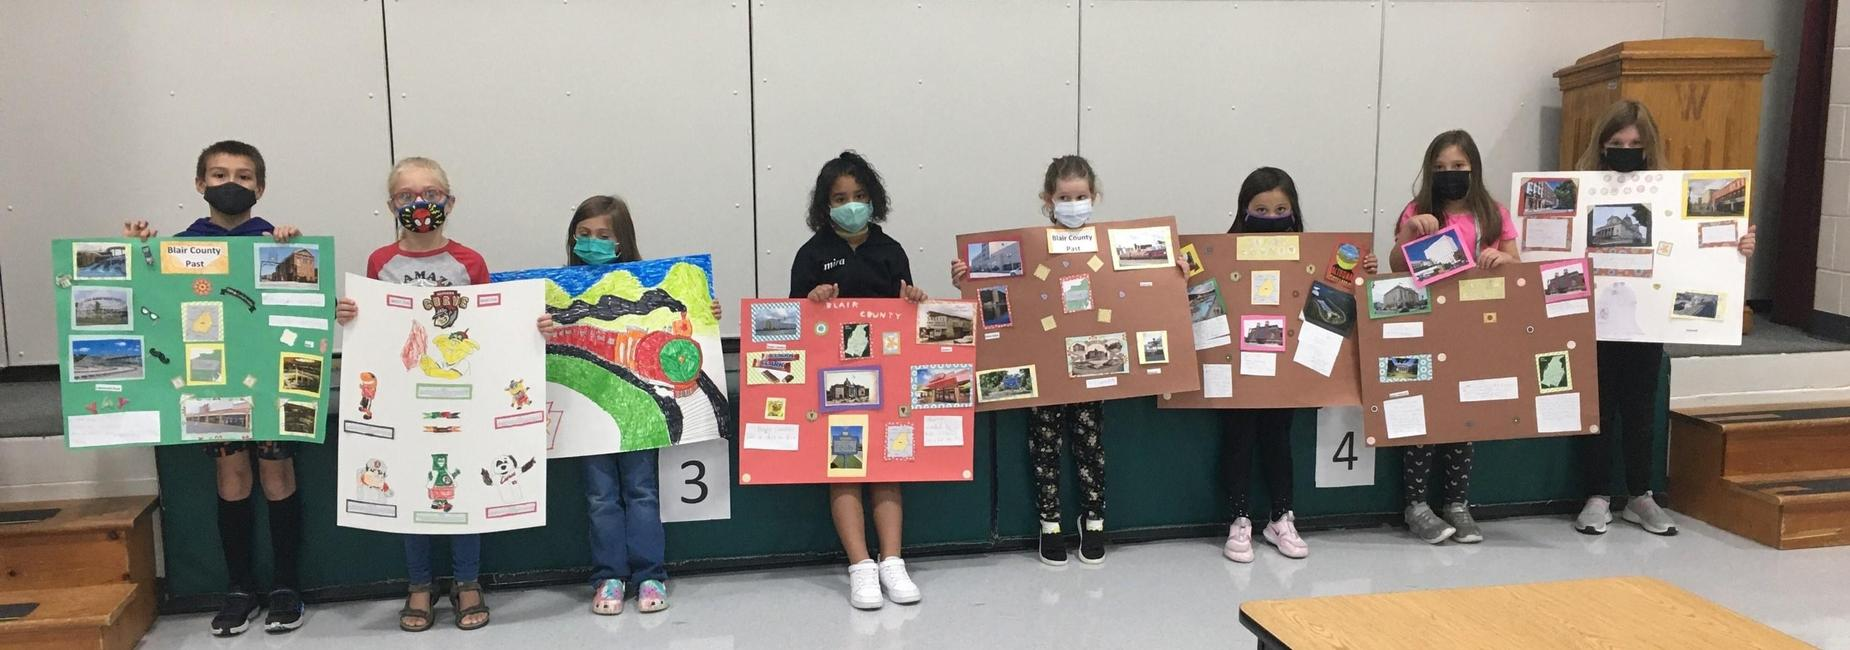 Blair County Lily Pond Poster Contest